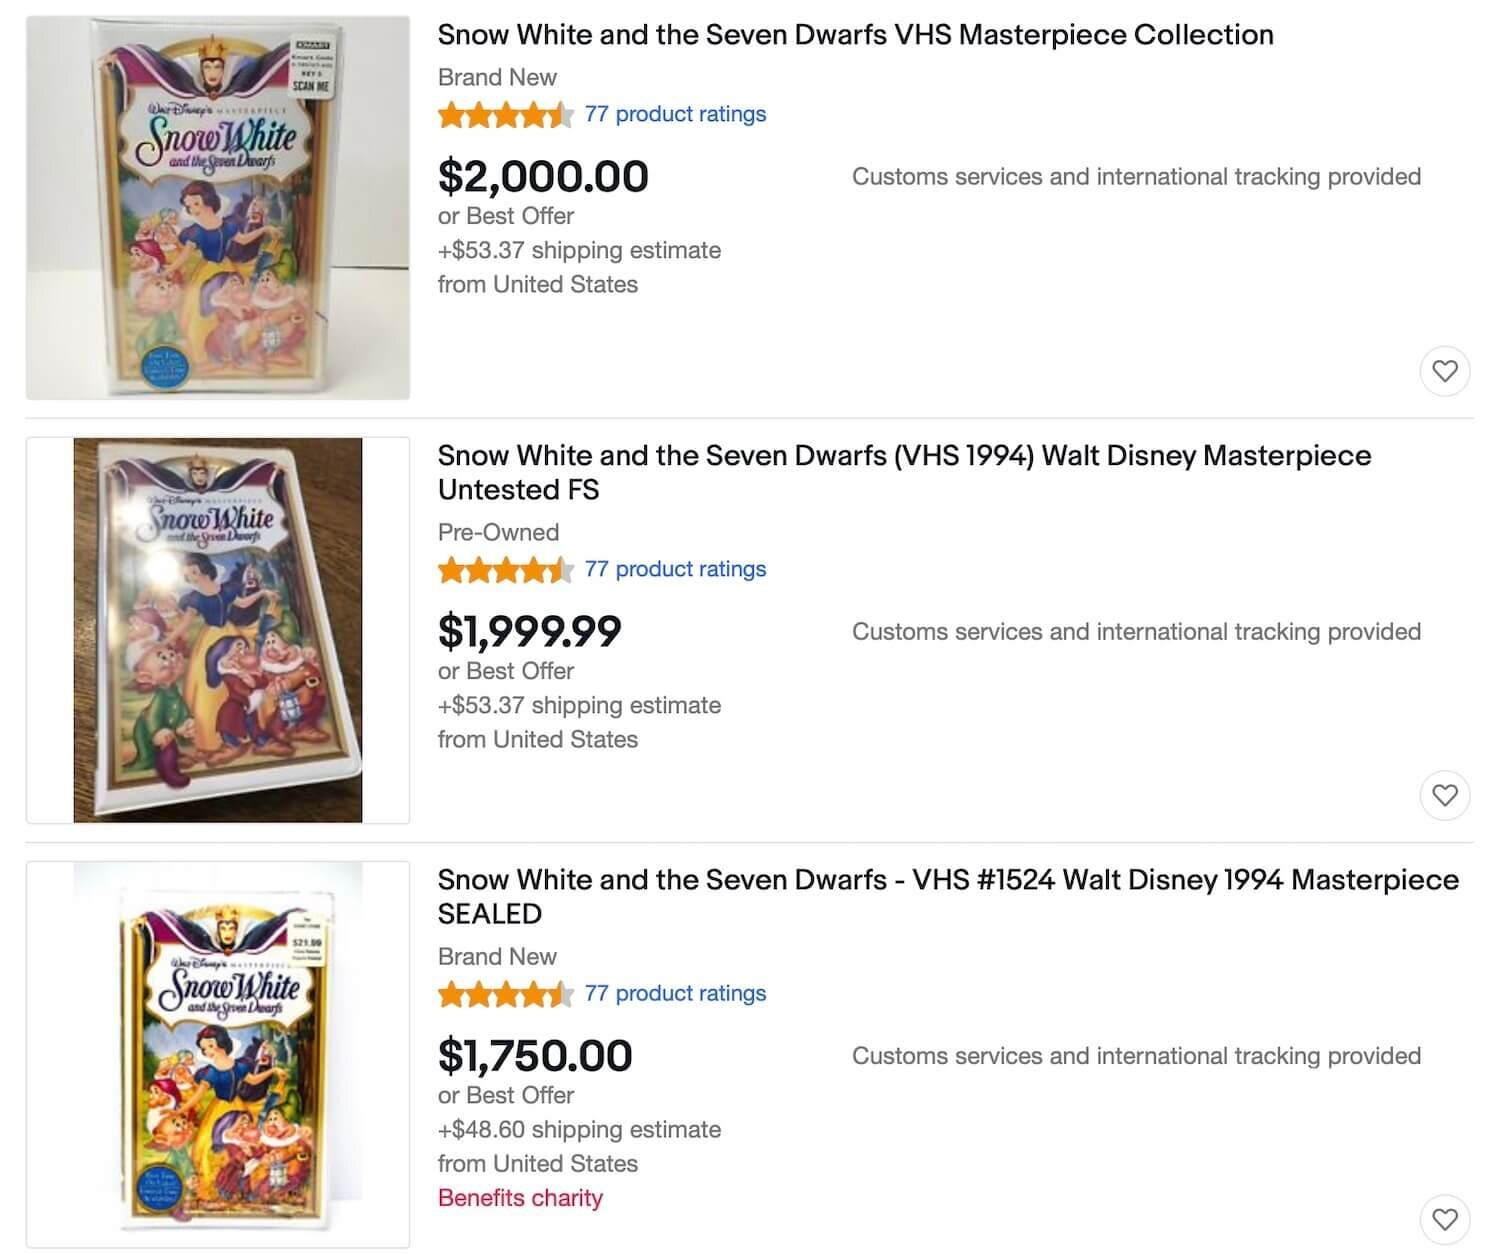 Rip Off Pricing For The Masterpiece Snow White VHS